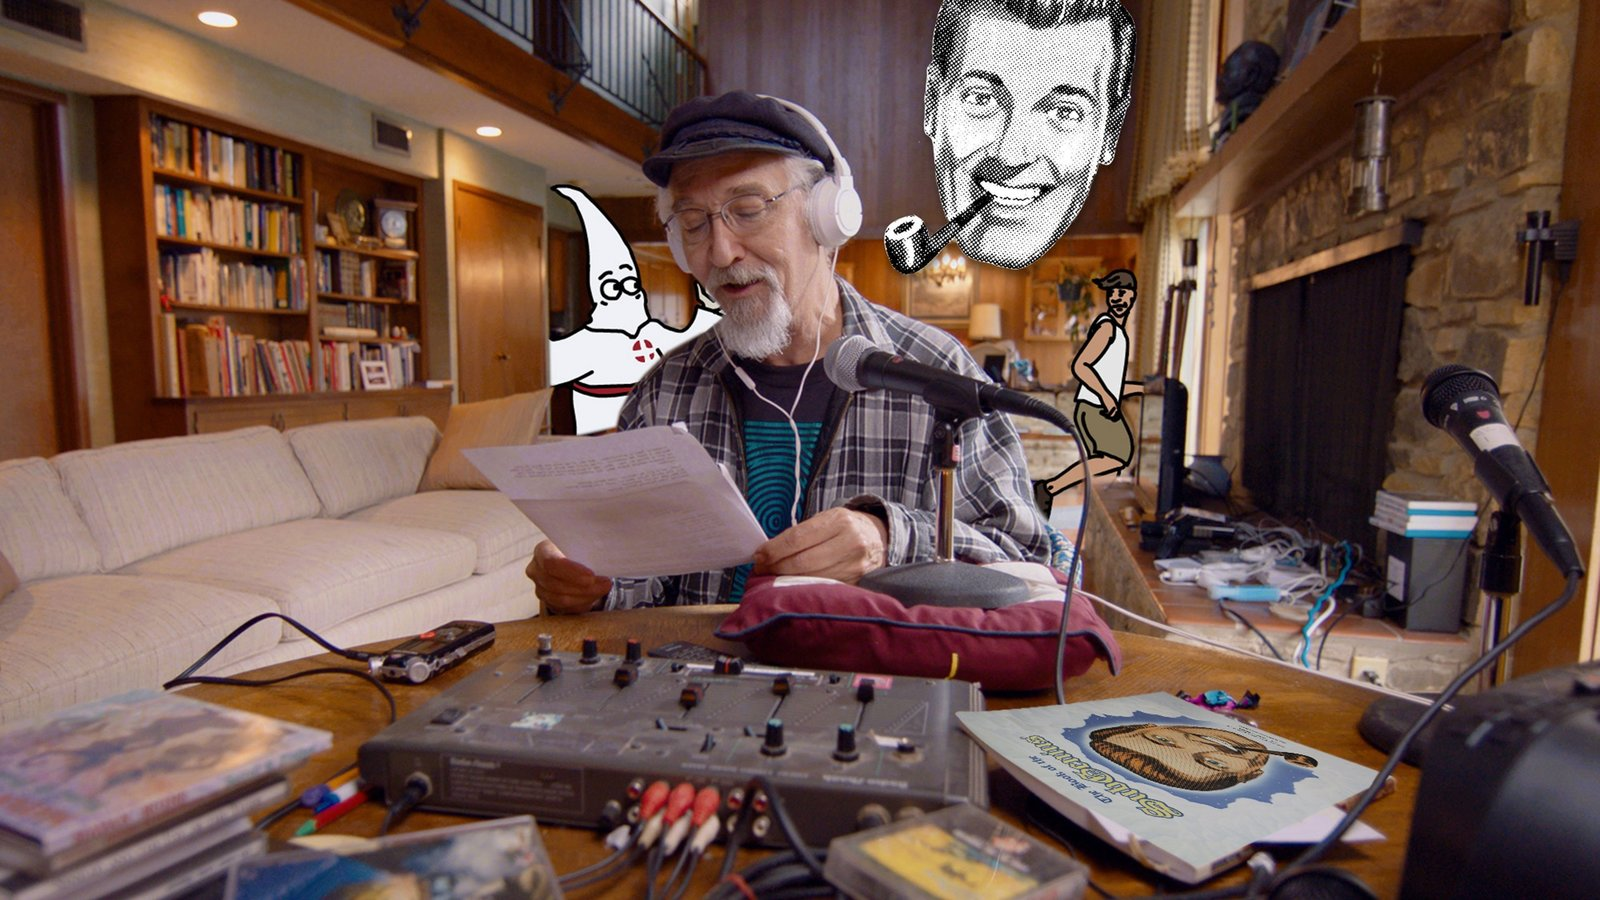 J.R. Bob Dobbs and the Church of the SubGenius